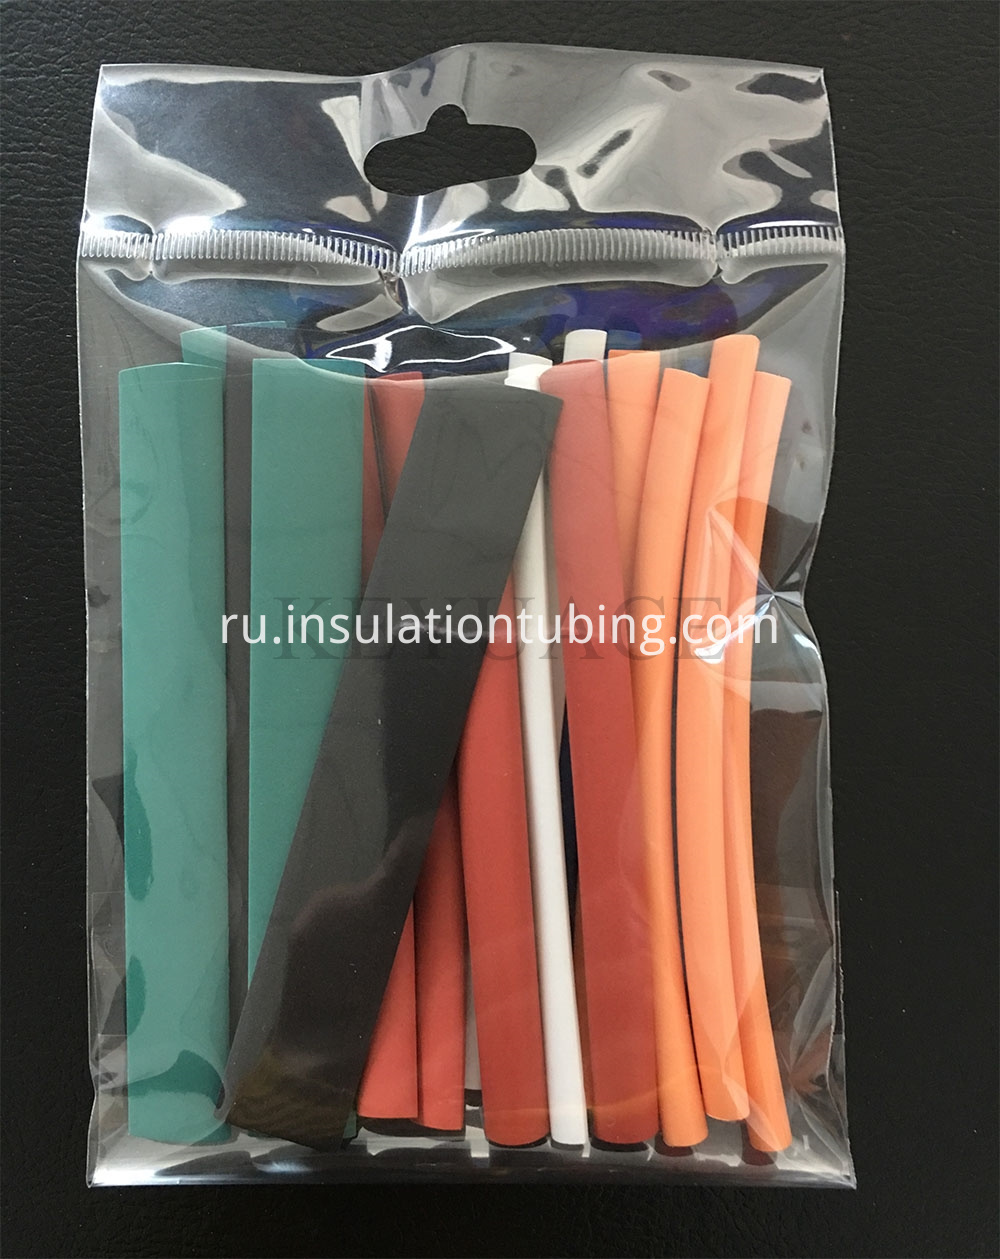 Wrap Set Shrinking Tube